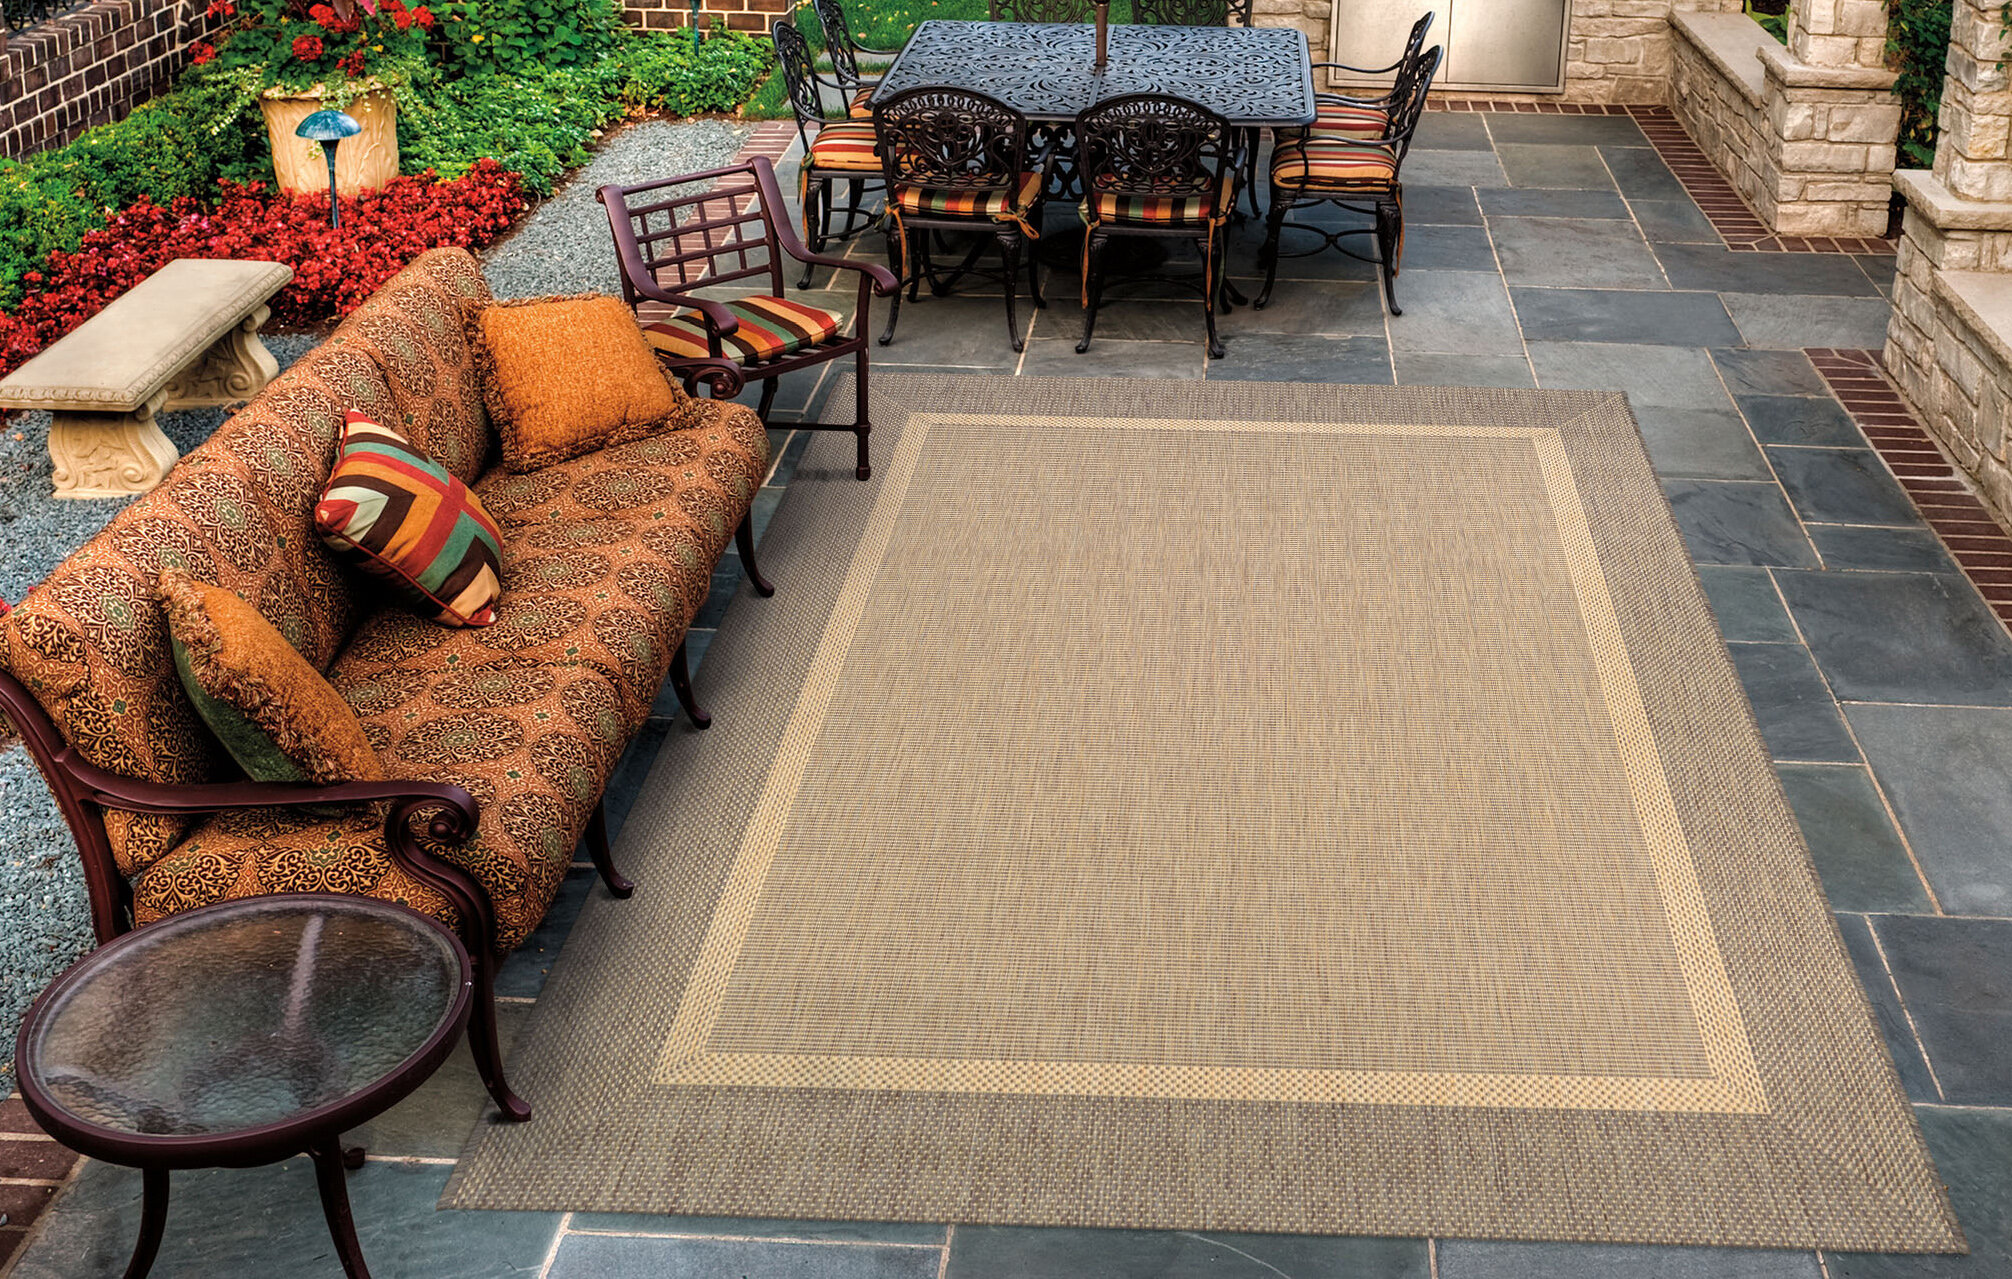 Enjoyable Saffold Texture Beige Brown Area Rug Download Free Architecture Designs Intelgarnamadebymaigaardcom